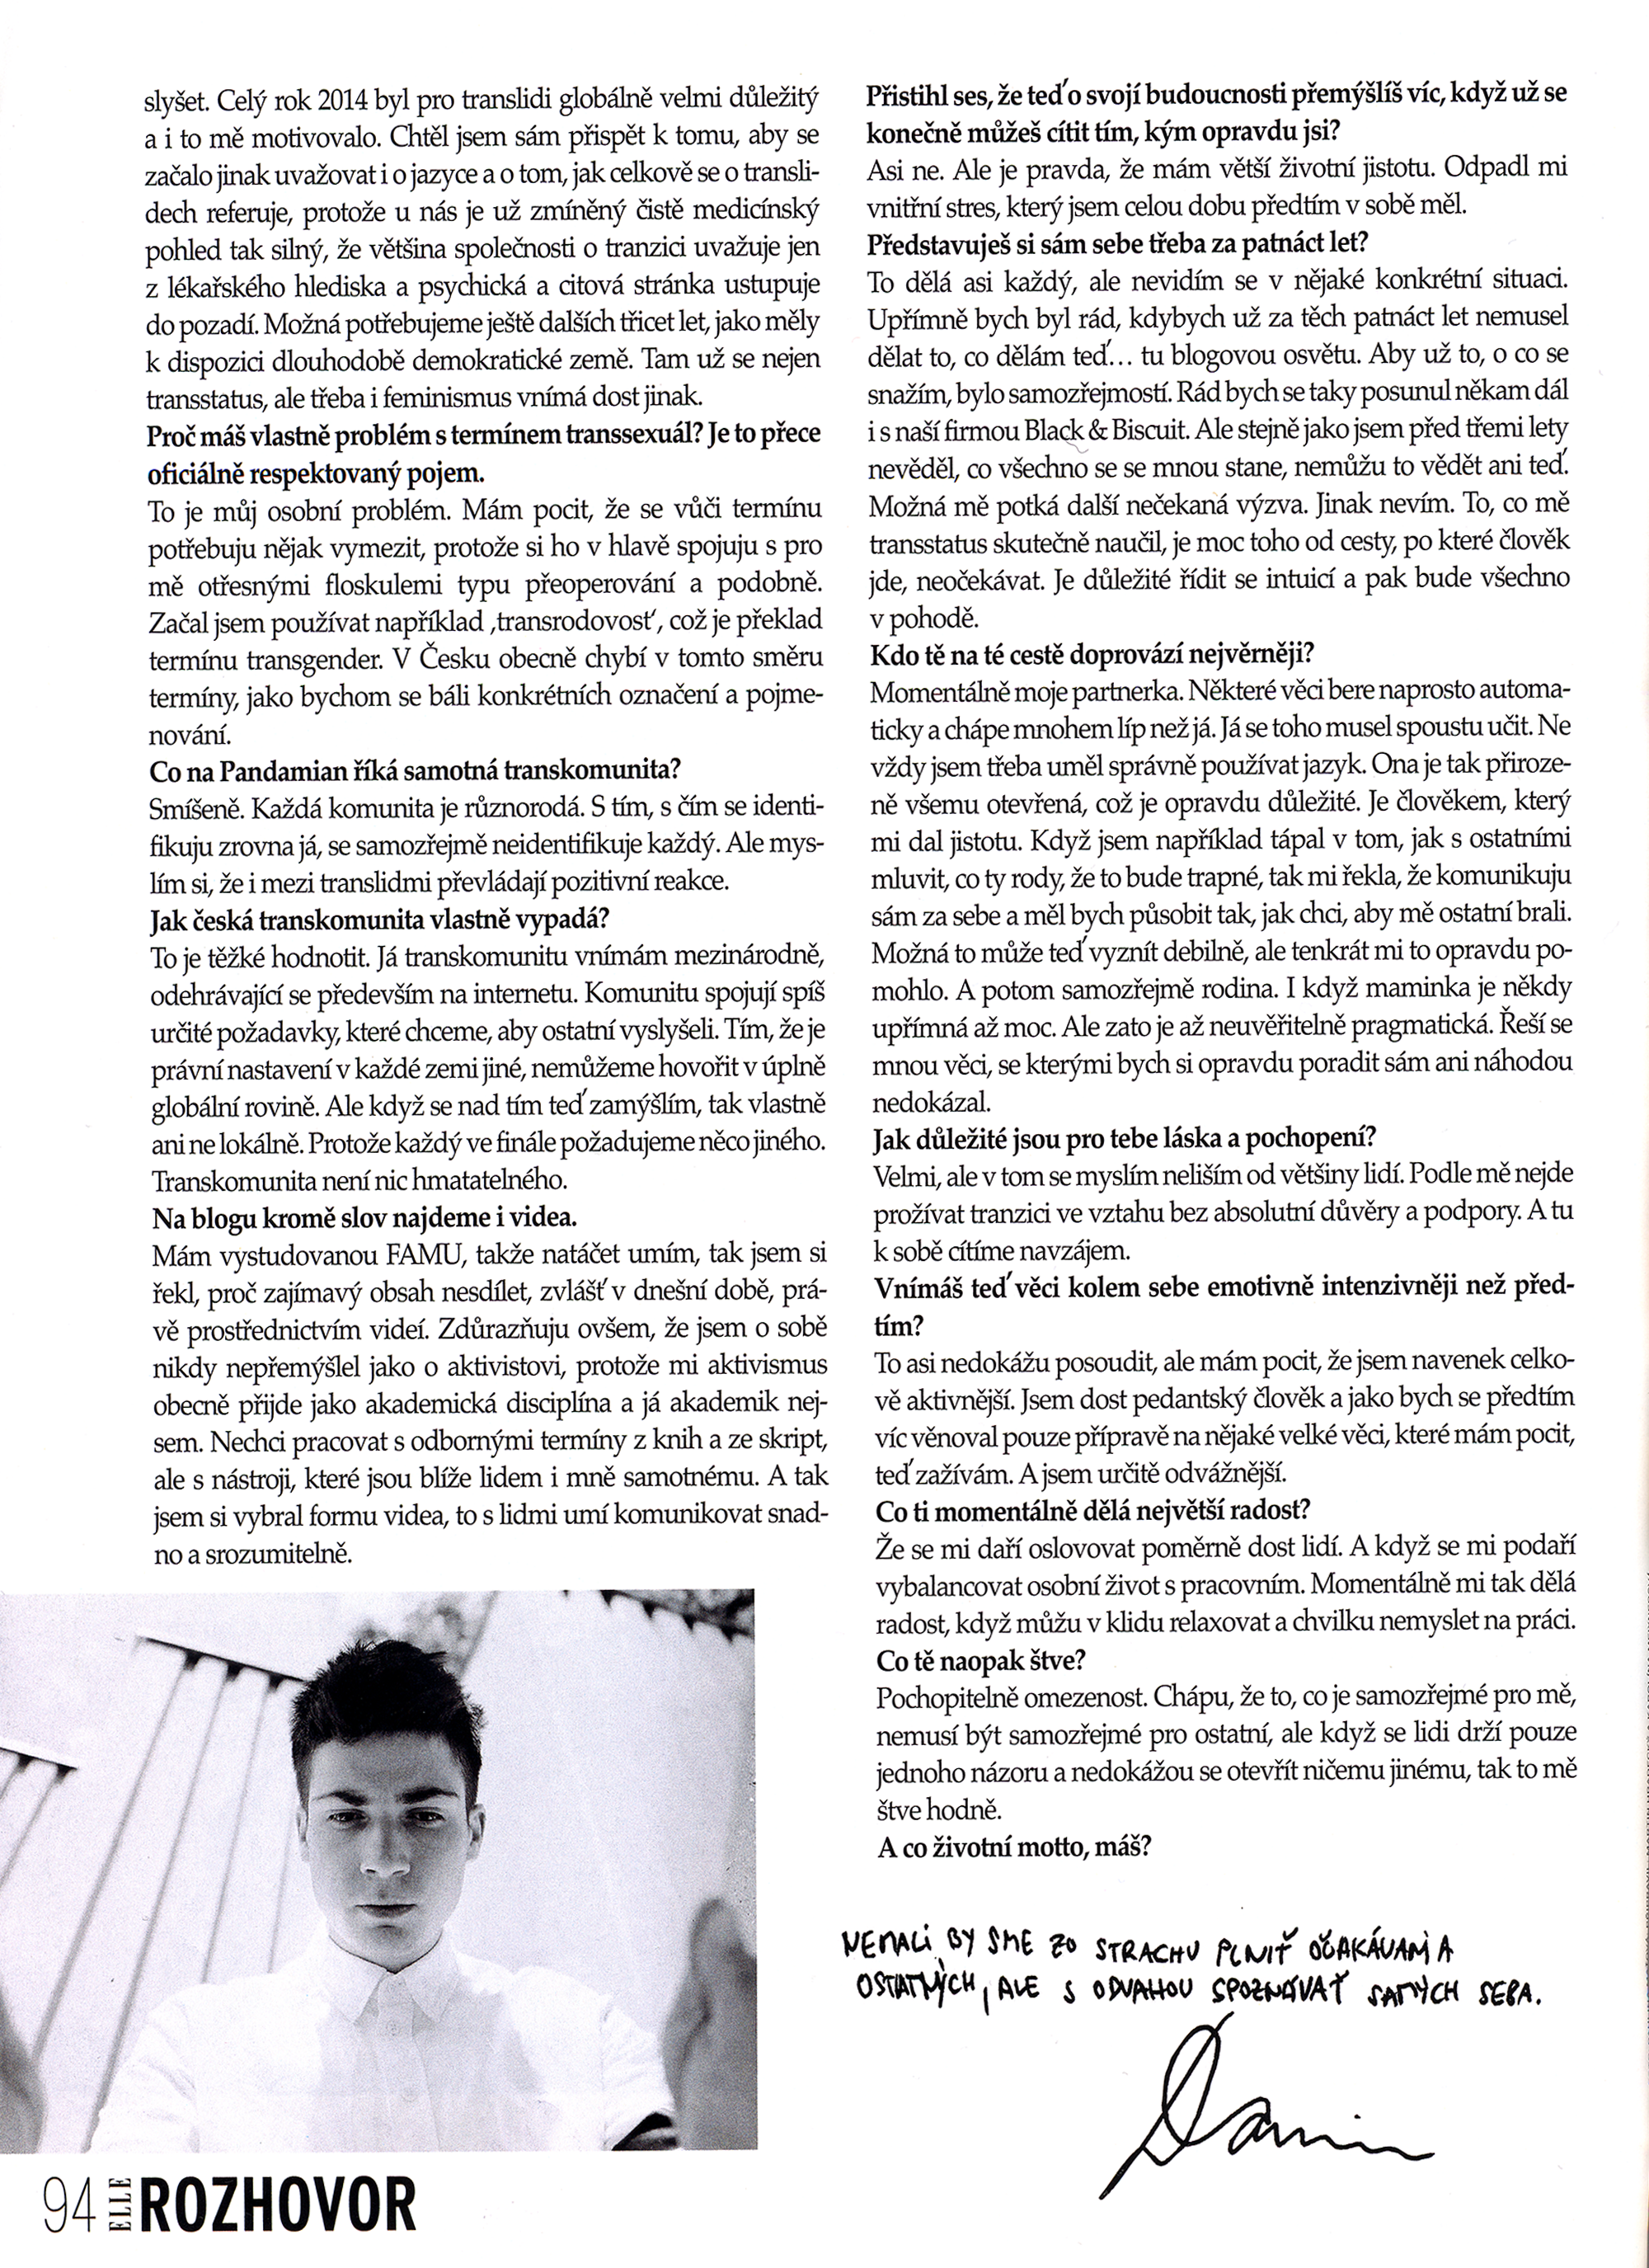 Scan10003.png